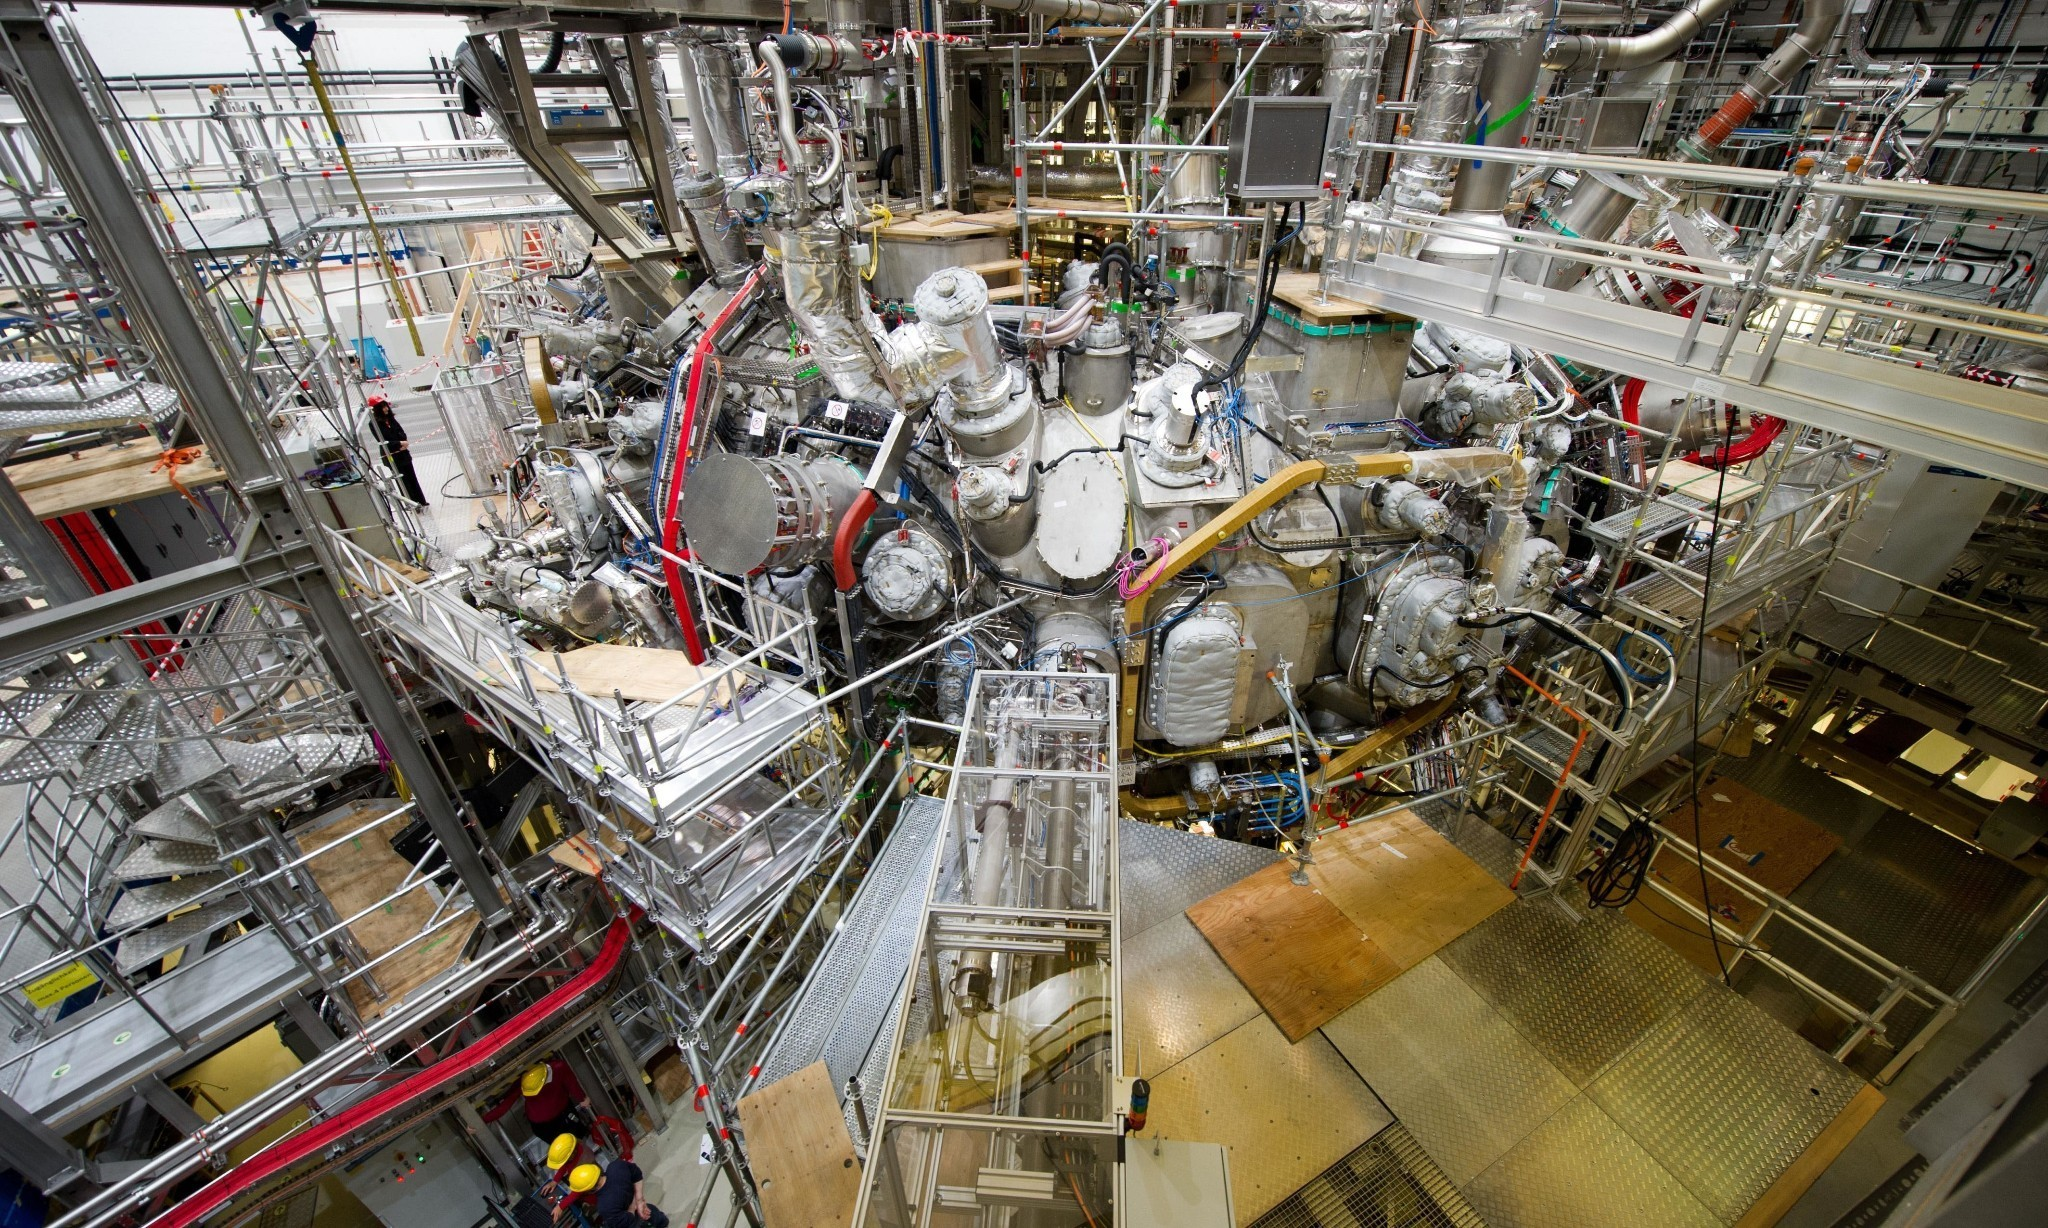 German scientists to conduct nuclear fusion experiment